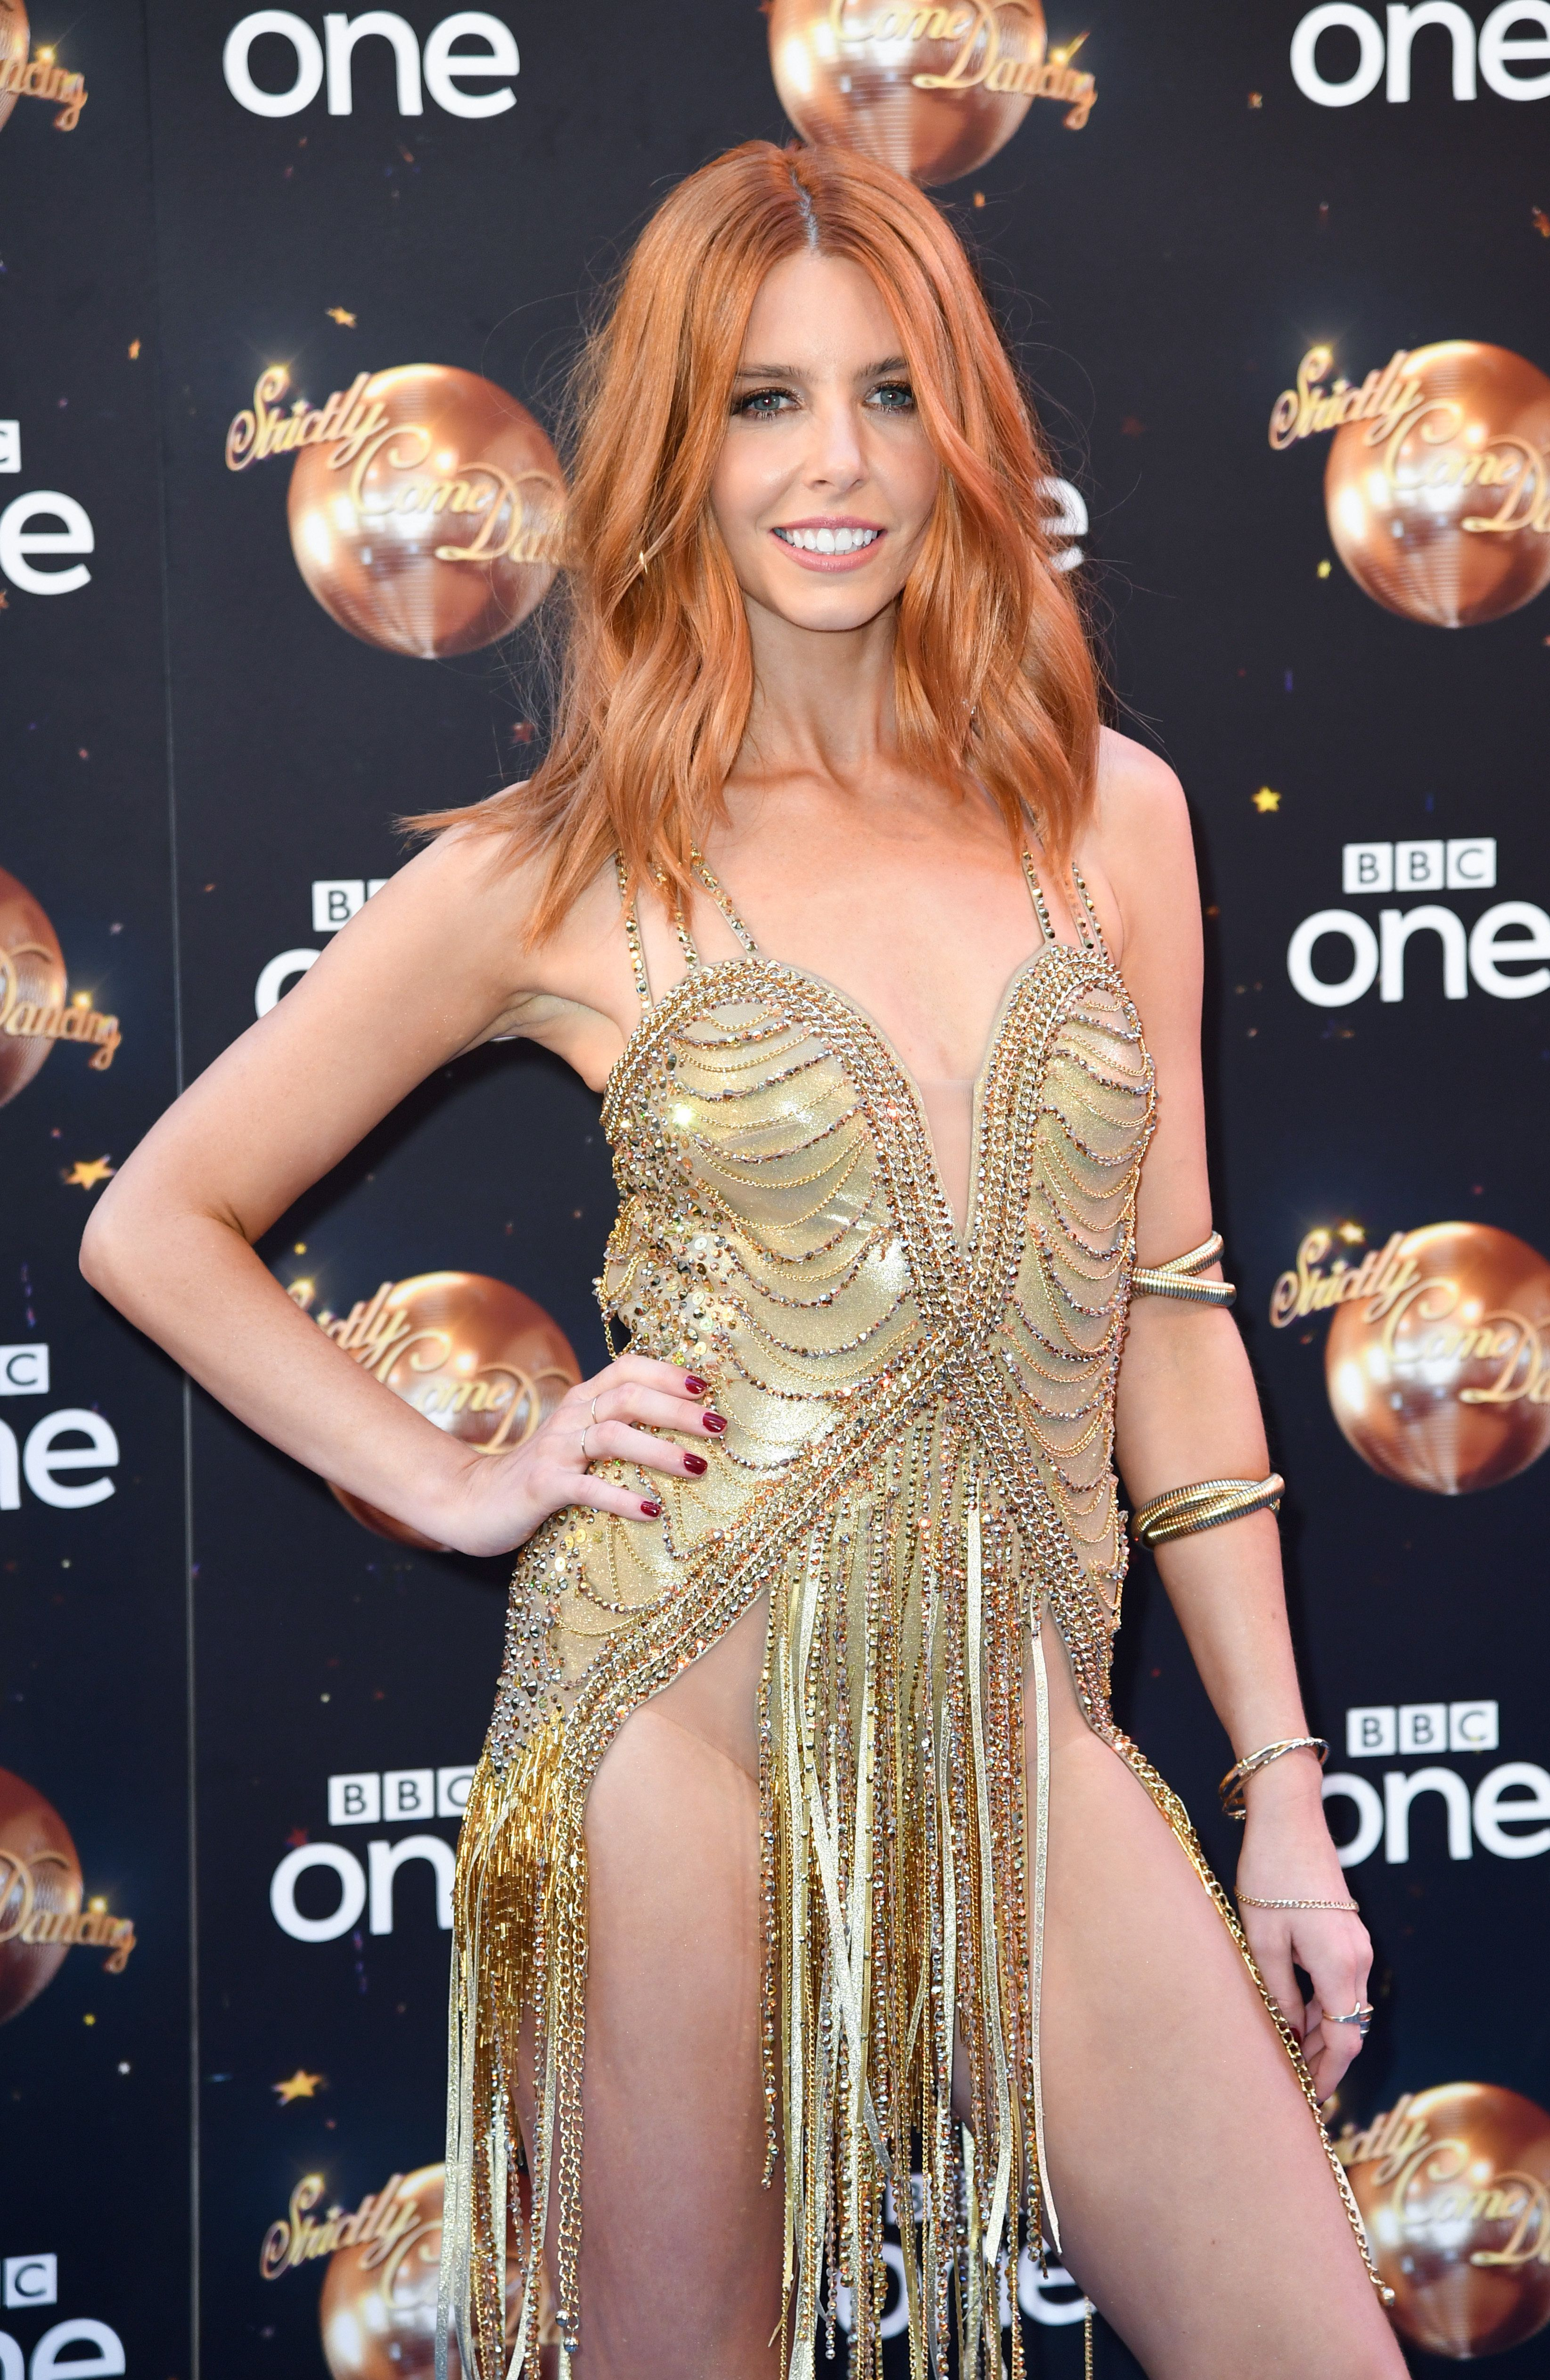 Strictly's Stacey Dooley 'Nearly Threw Up' After Hearing Muscle Tear In